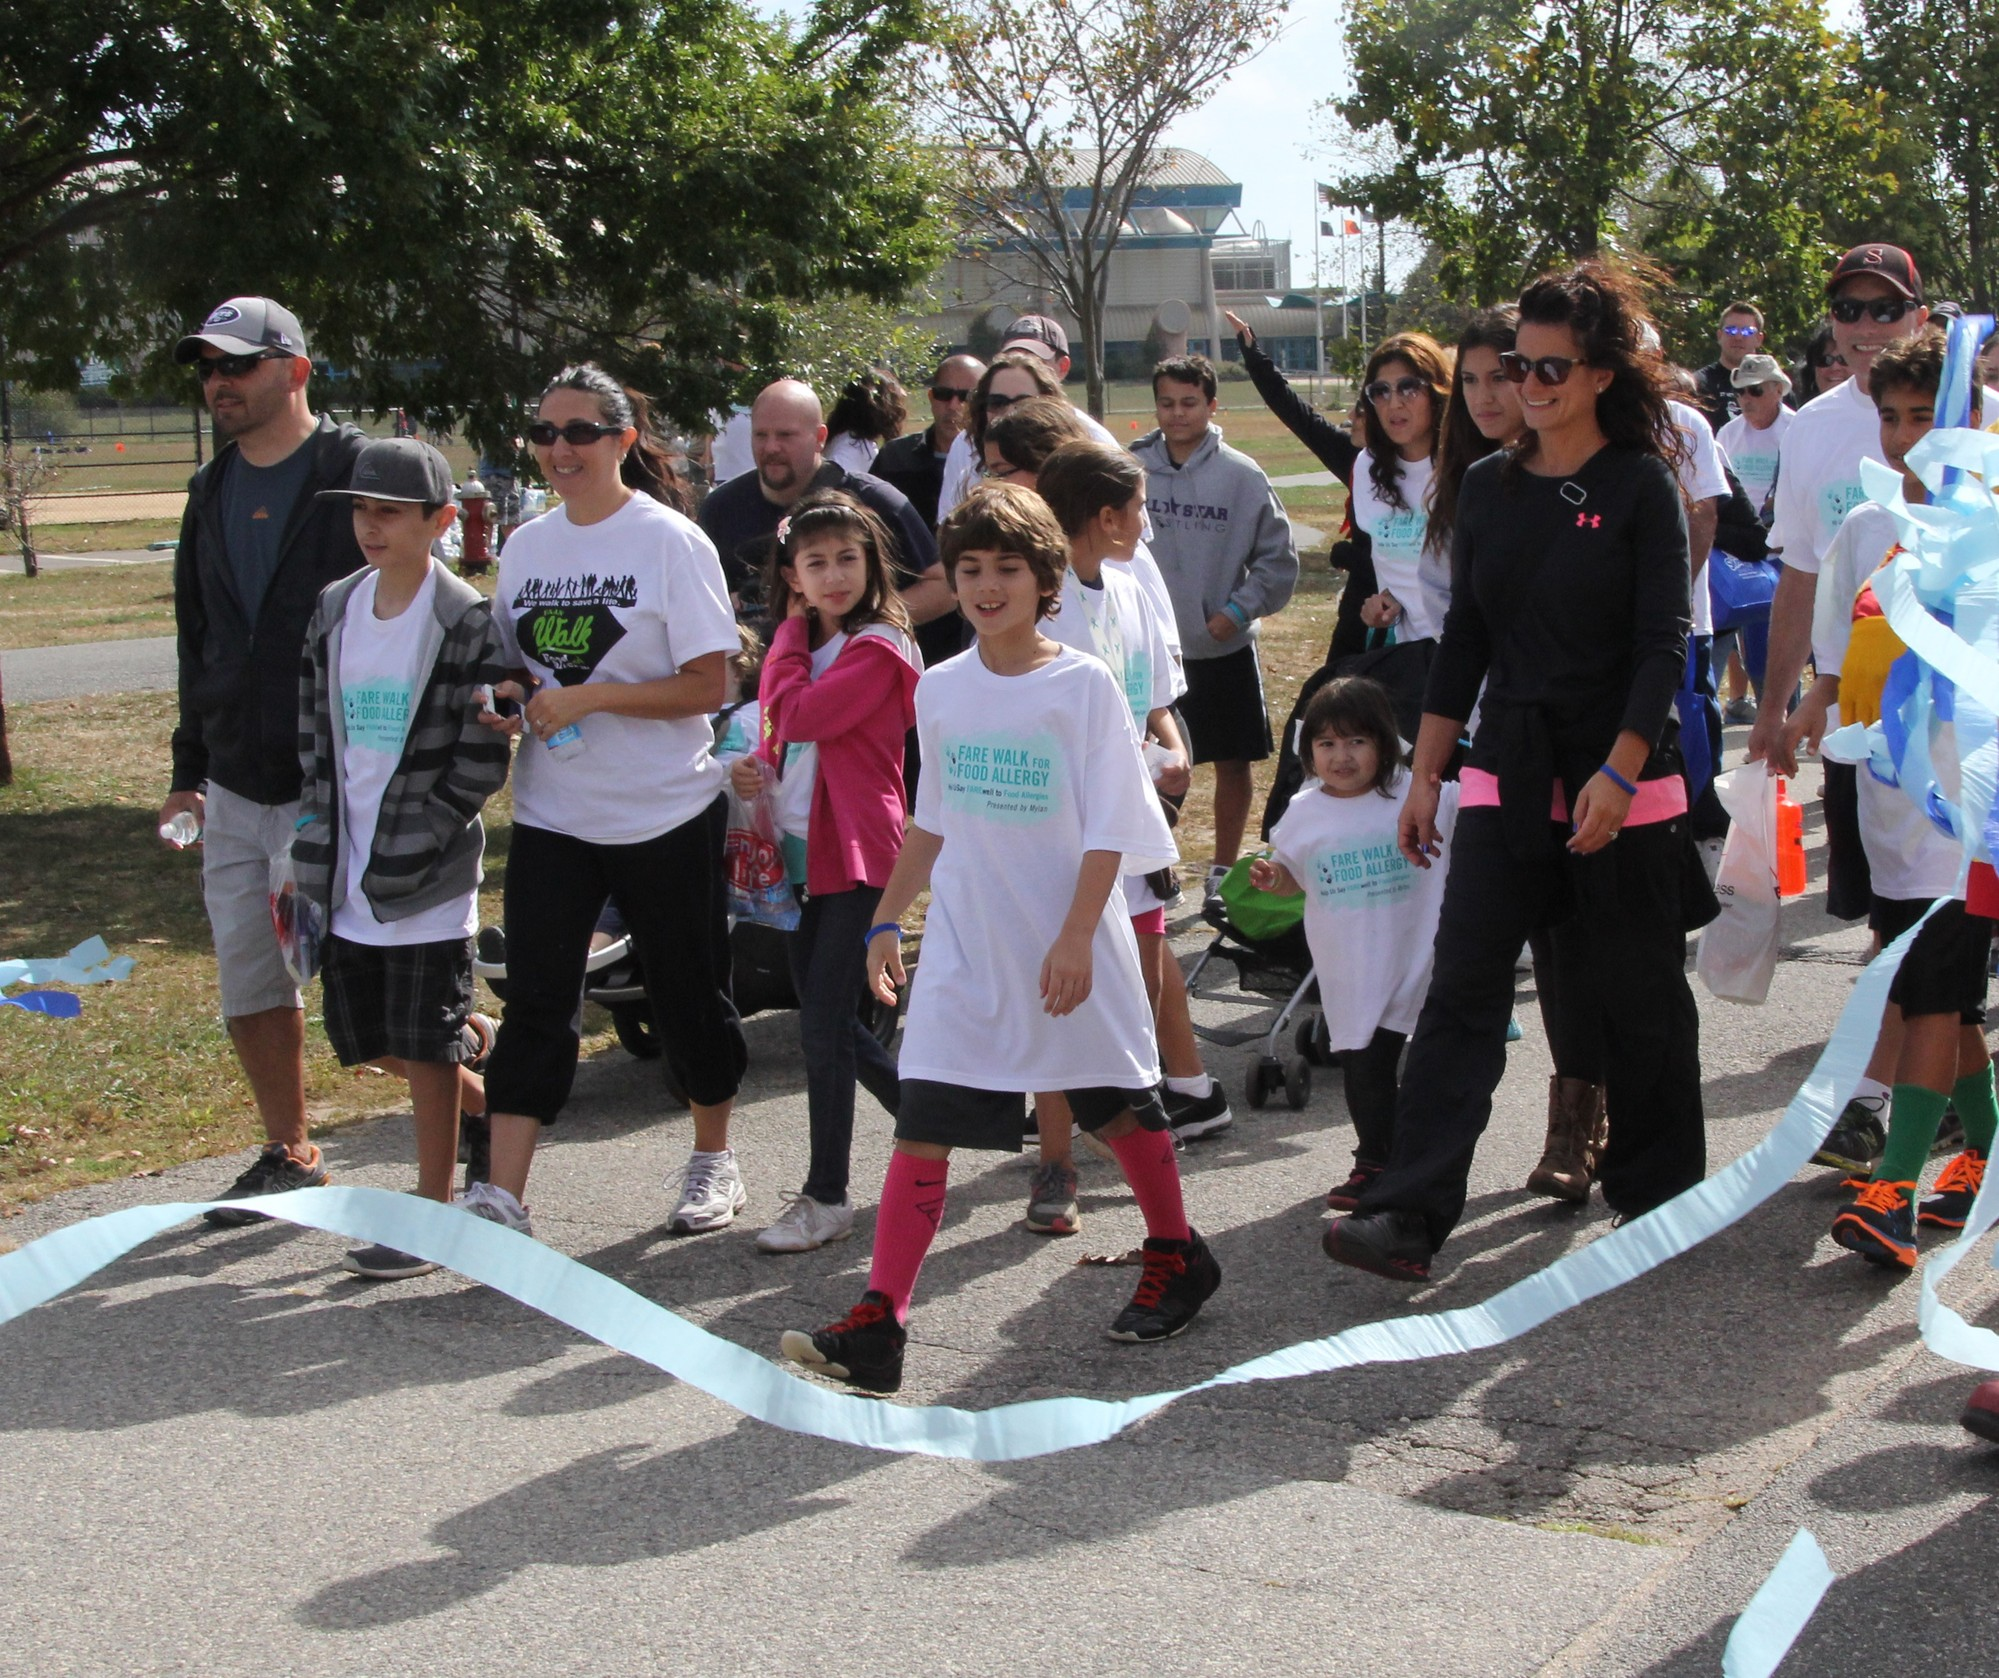 Food Allergy Research & Education raises money to fund research projects and other programs. It raised $143,000 at its annual walk in Eisenhower Park last month.